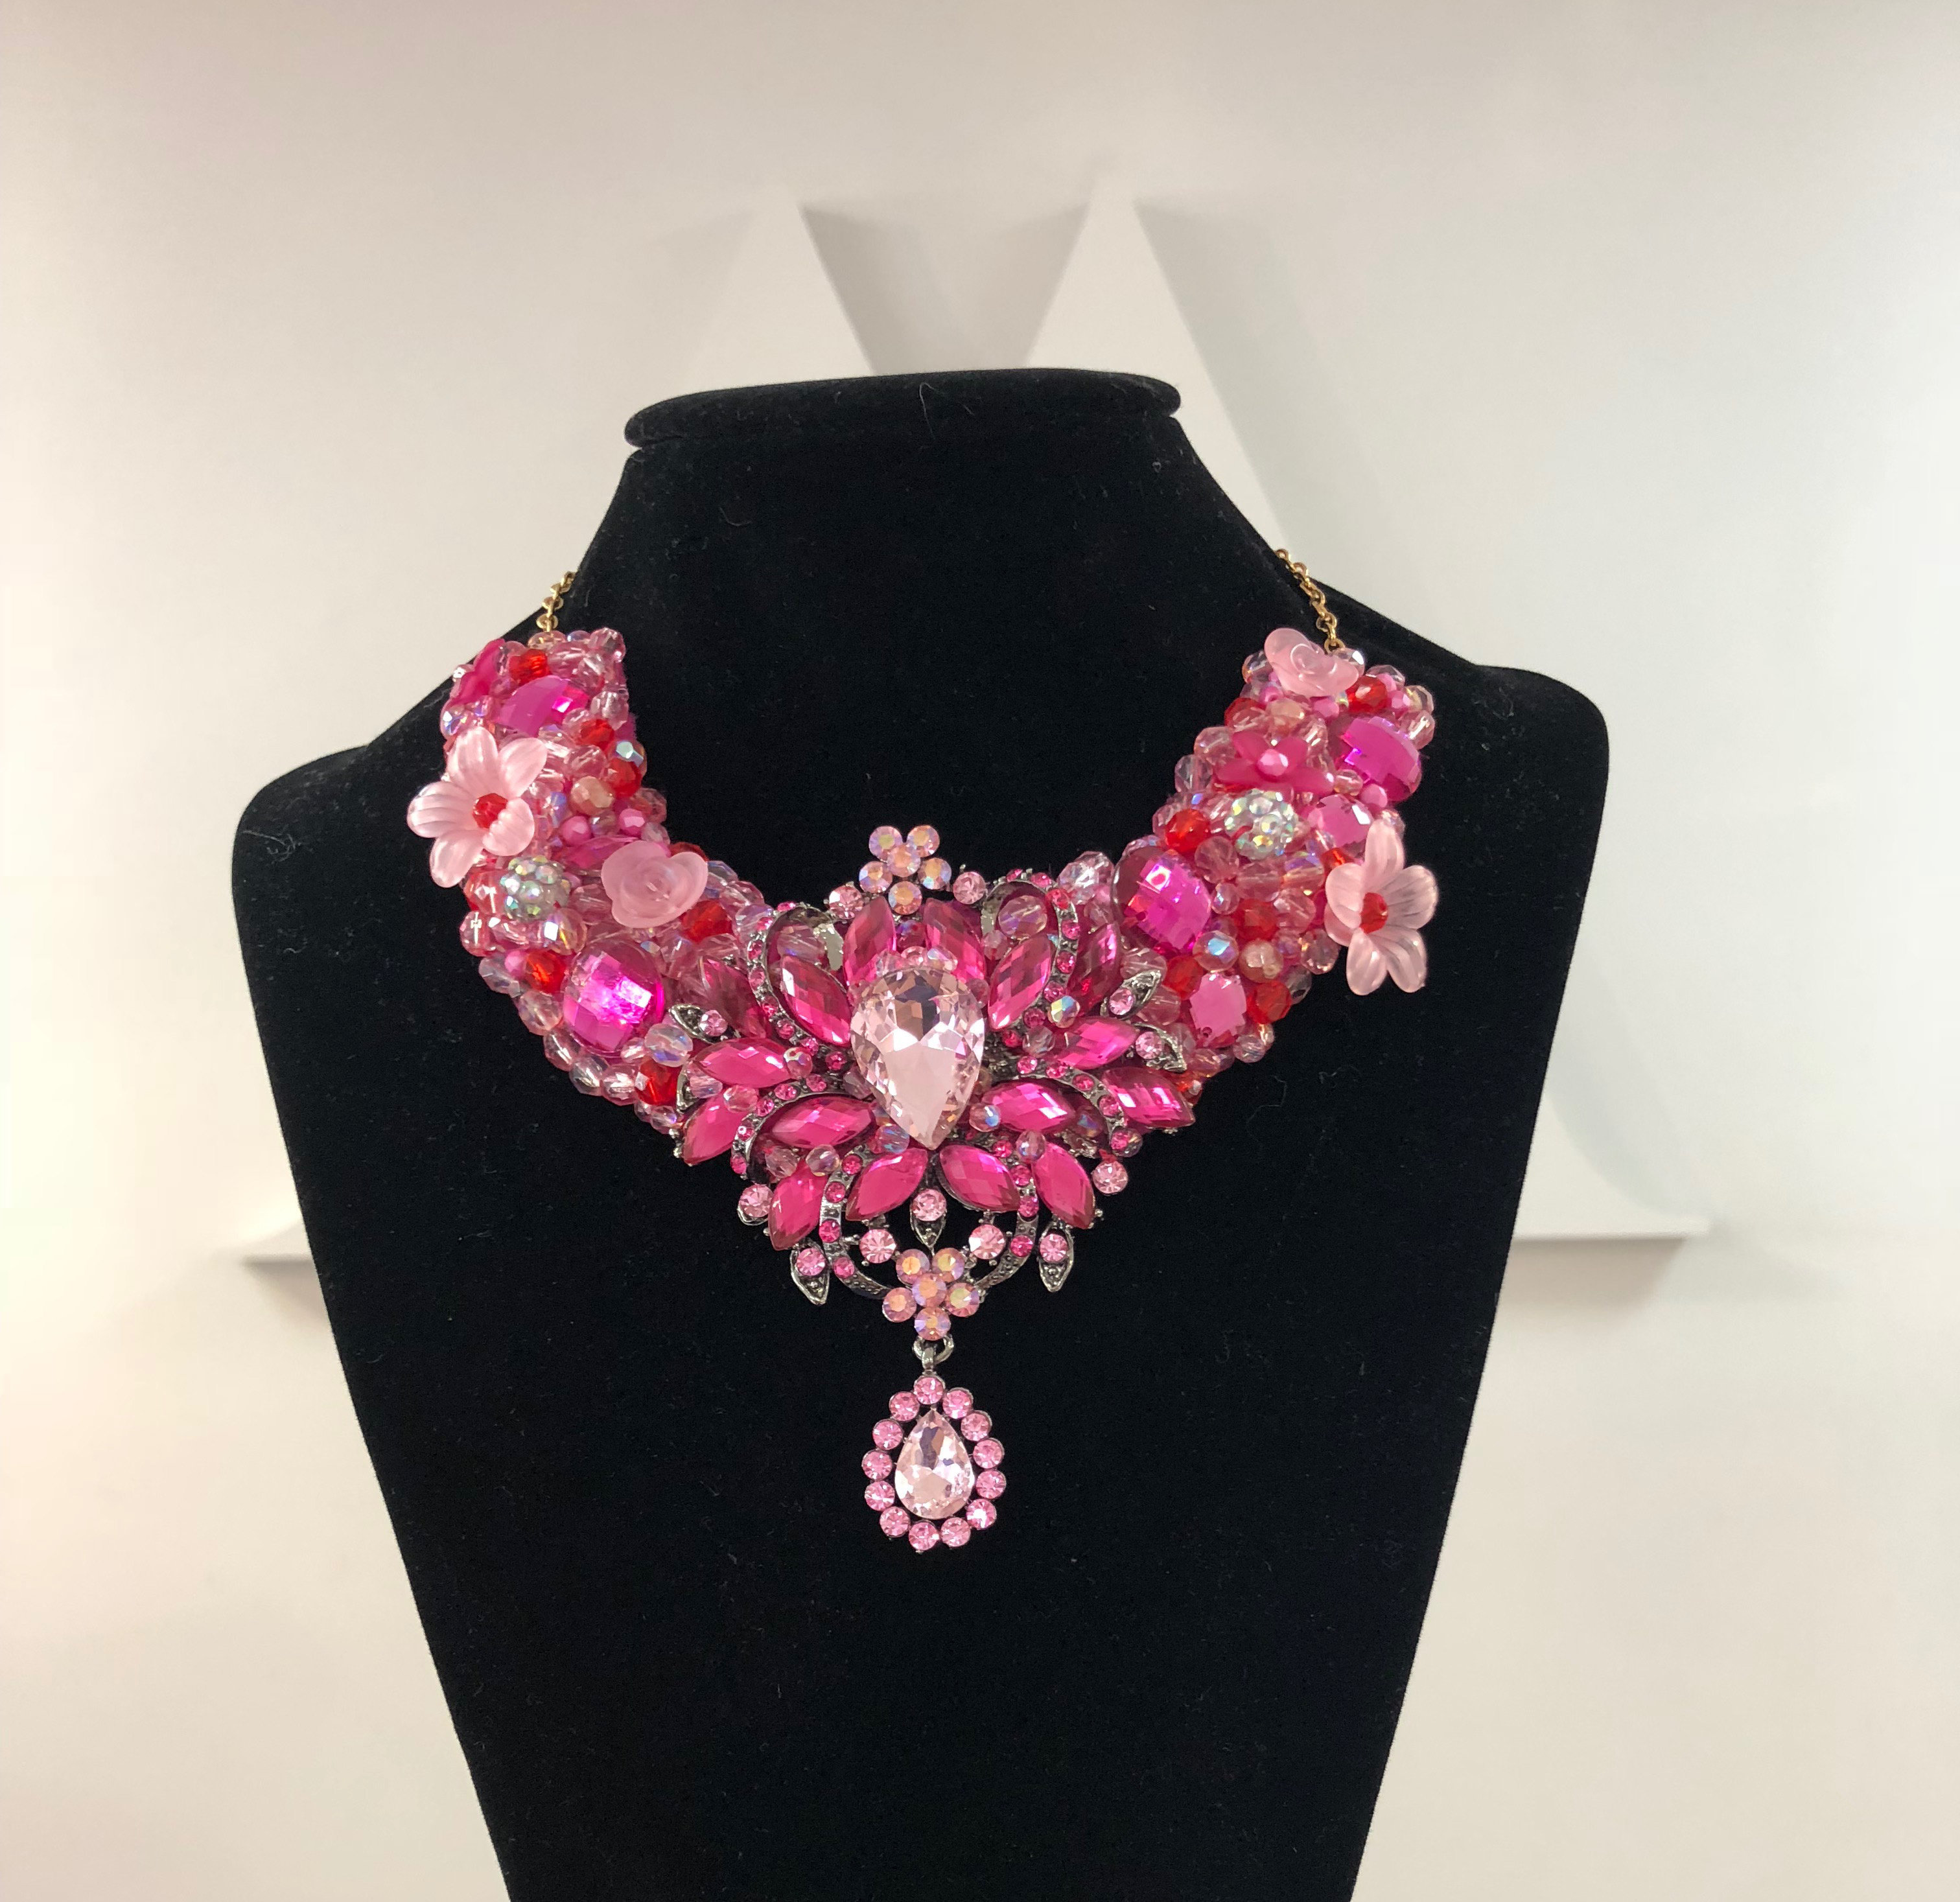 Aisling Maher Collar pink/cerise/red 2PMSNXXM5YVPW